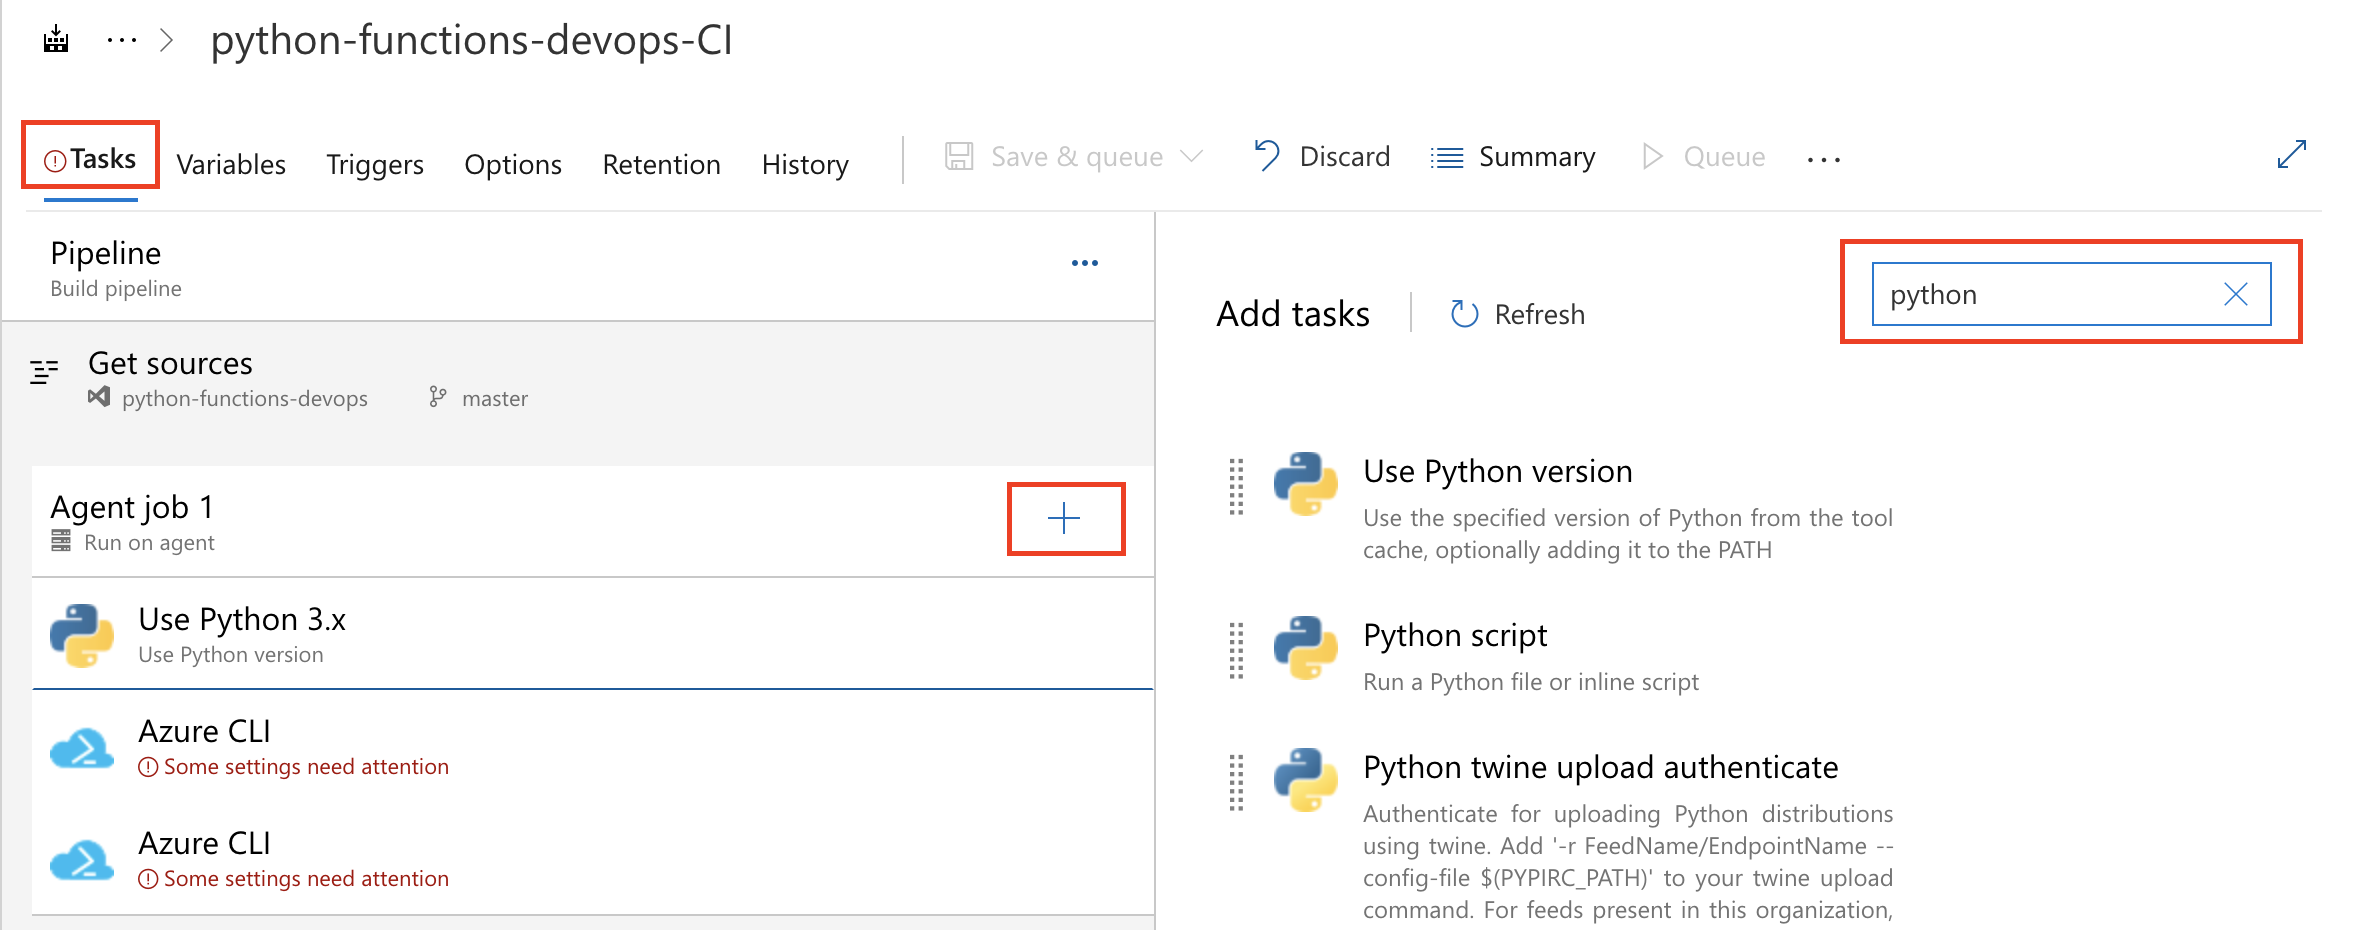 Deploying Azure Functions in Python with Azure DevOps